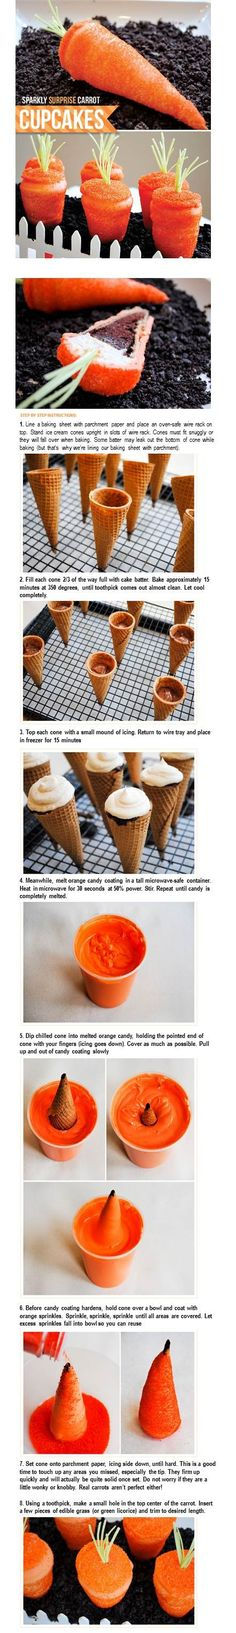 SPARKLING CARROT CUPCAKES TUTORIAL - Love this but they make it look so easy - have a feeling it would not be